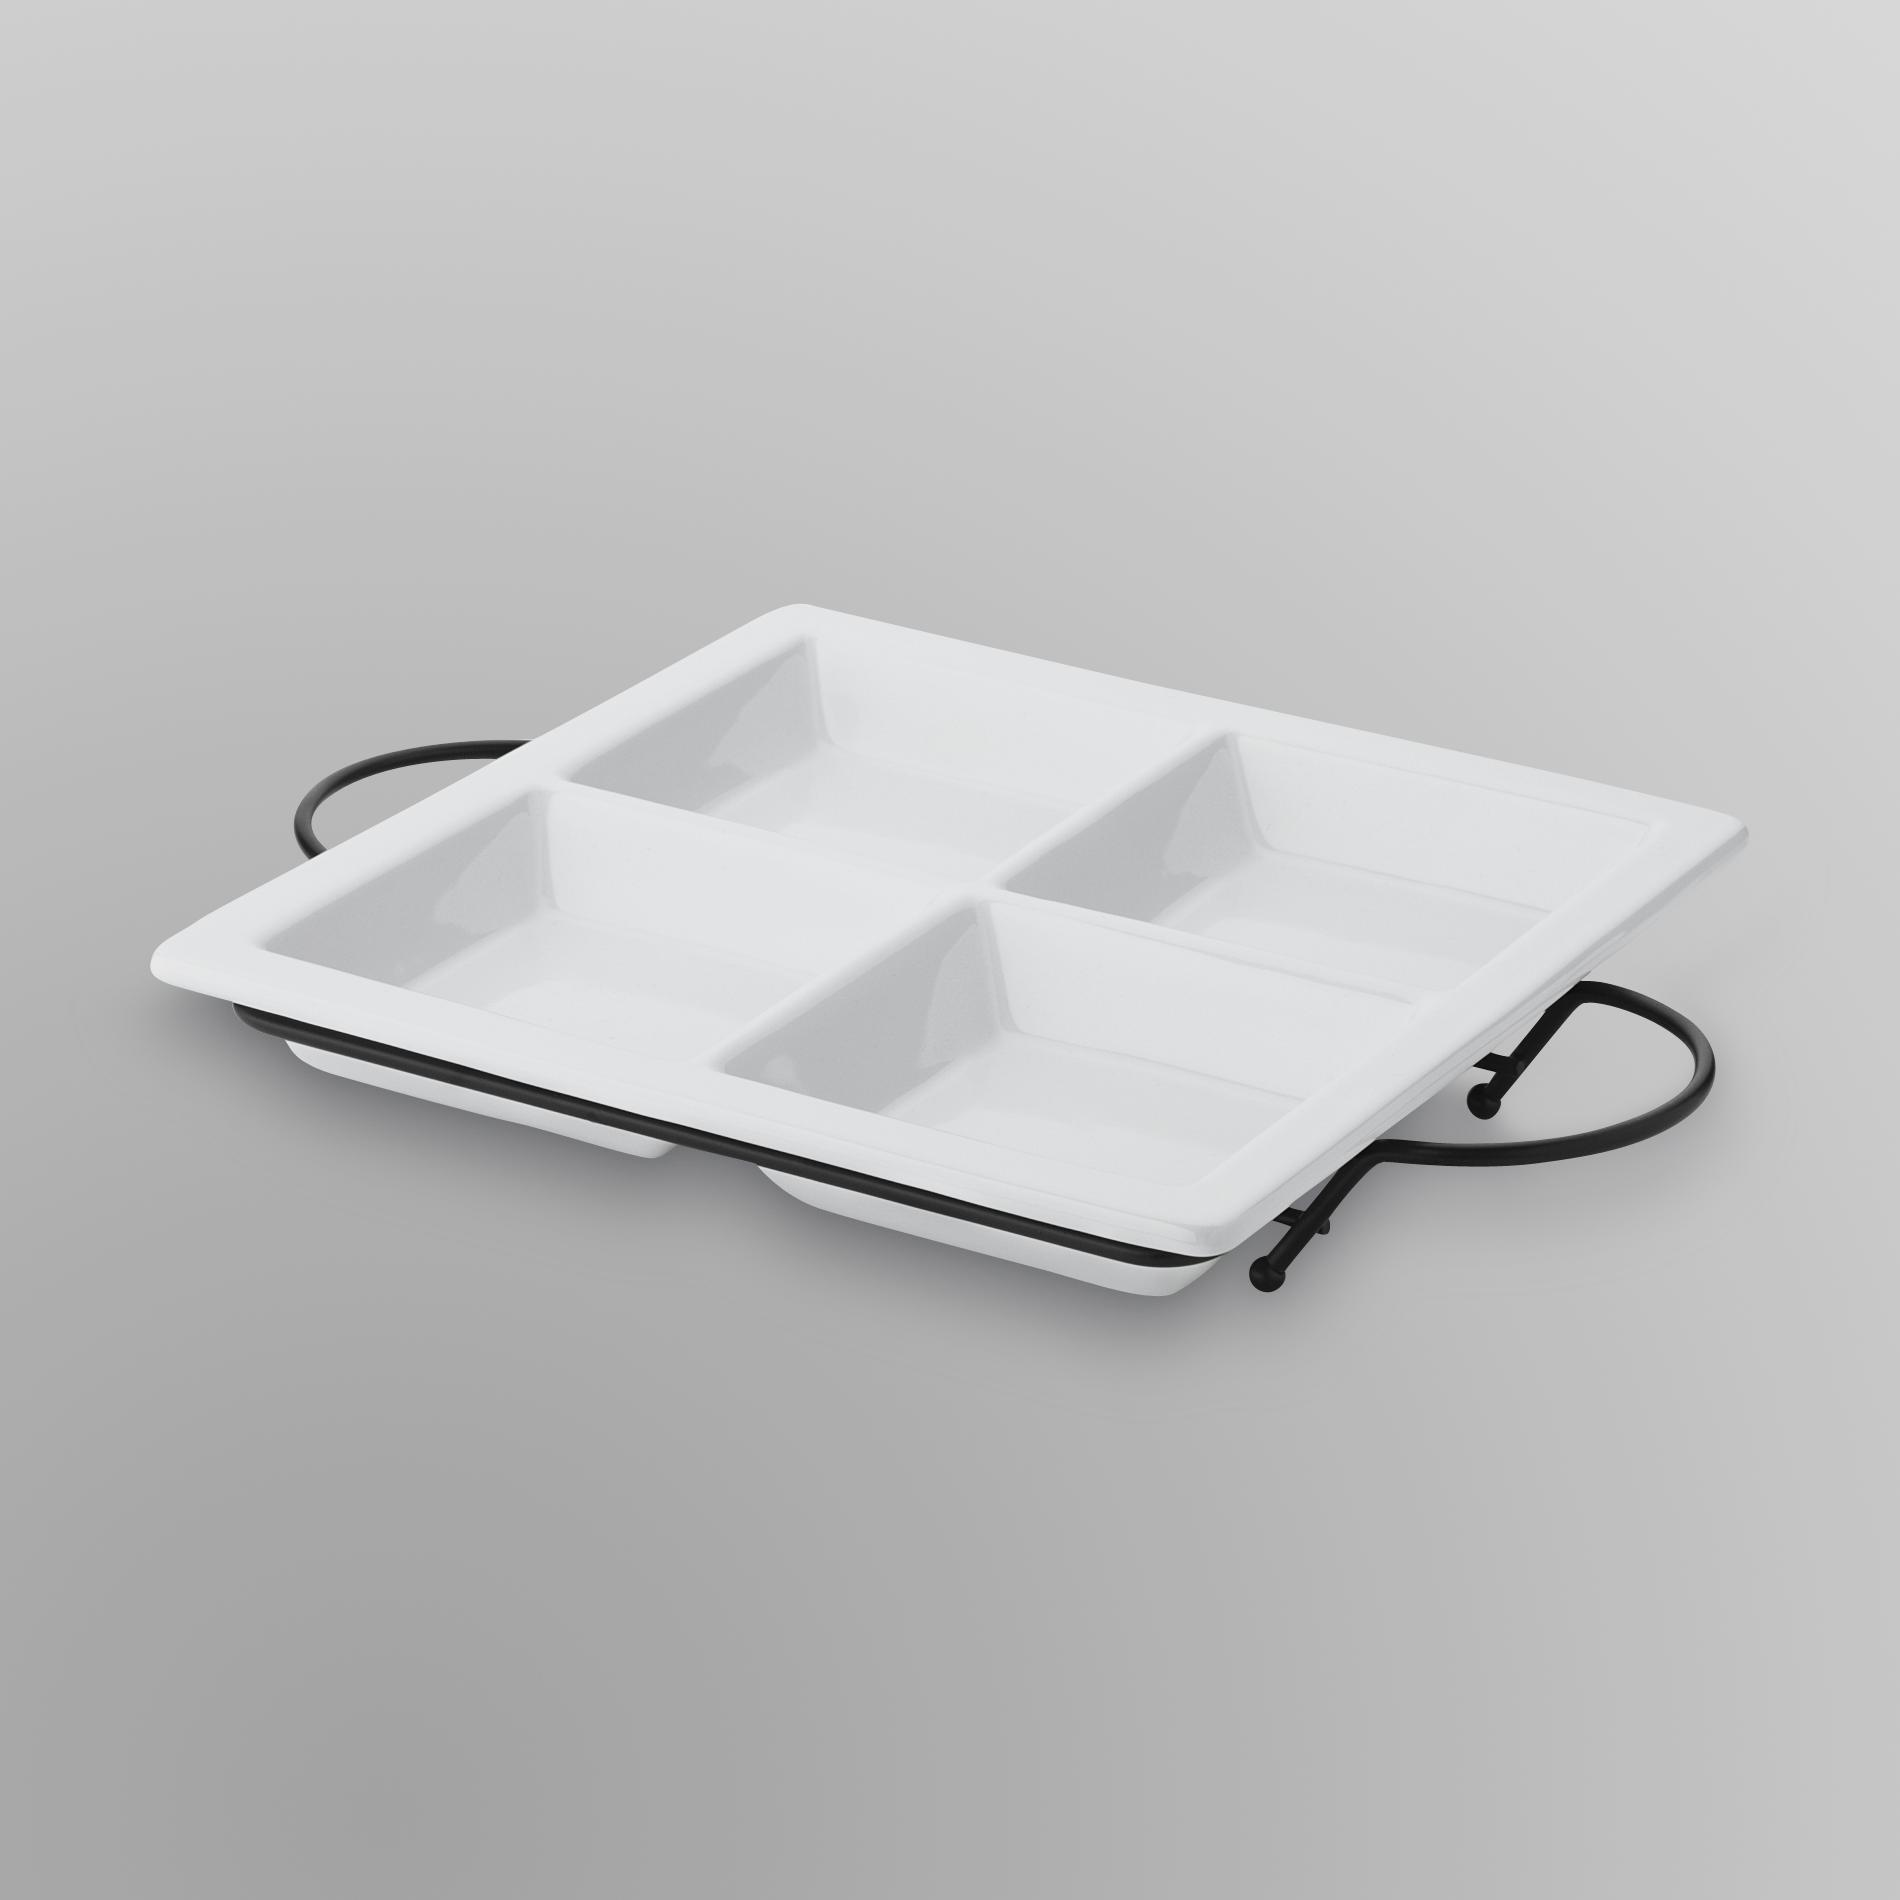 4-Section Serving Tray & Stand